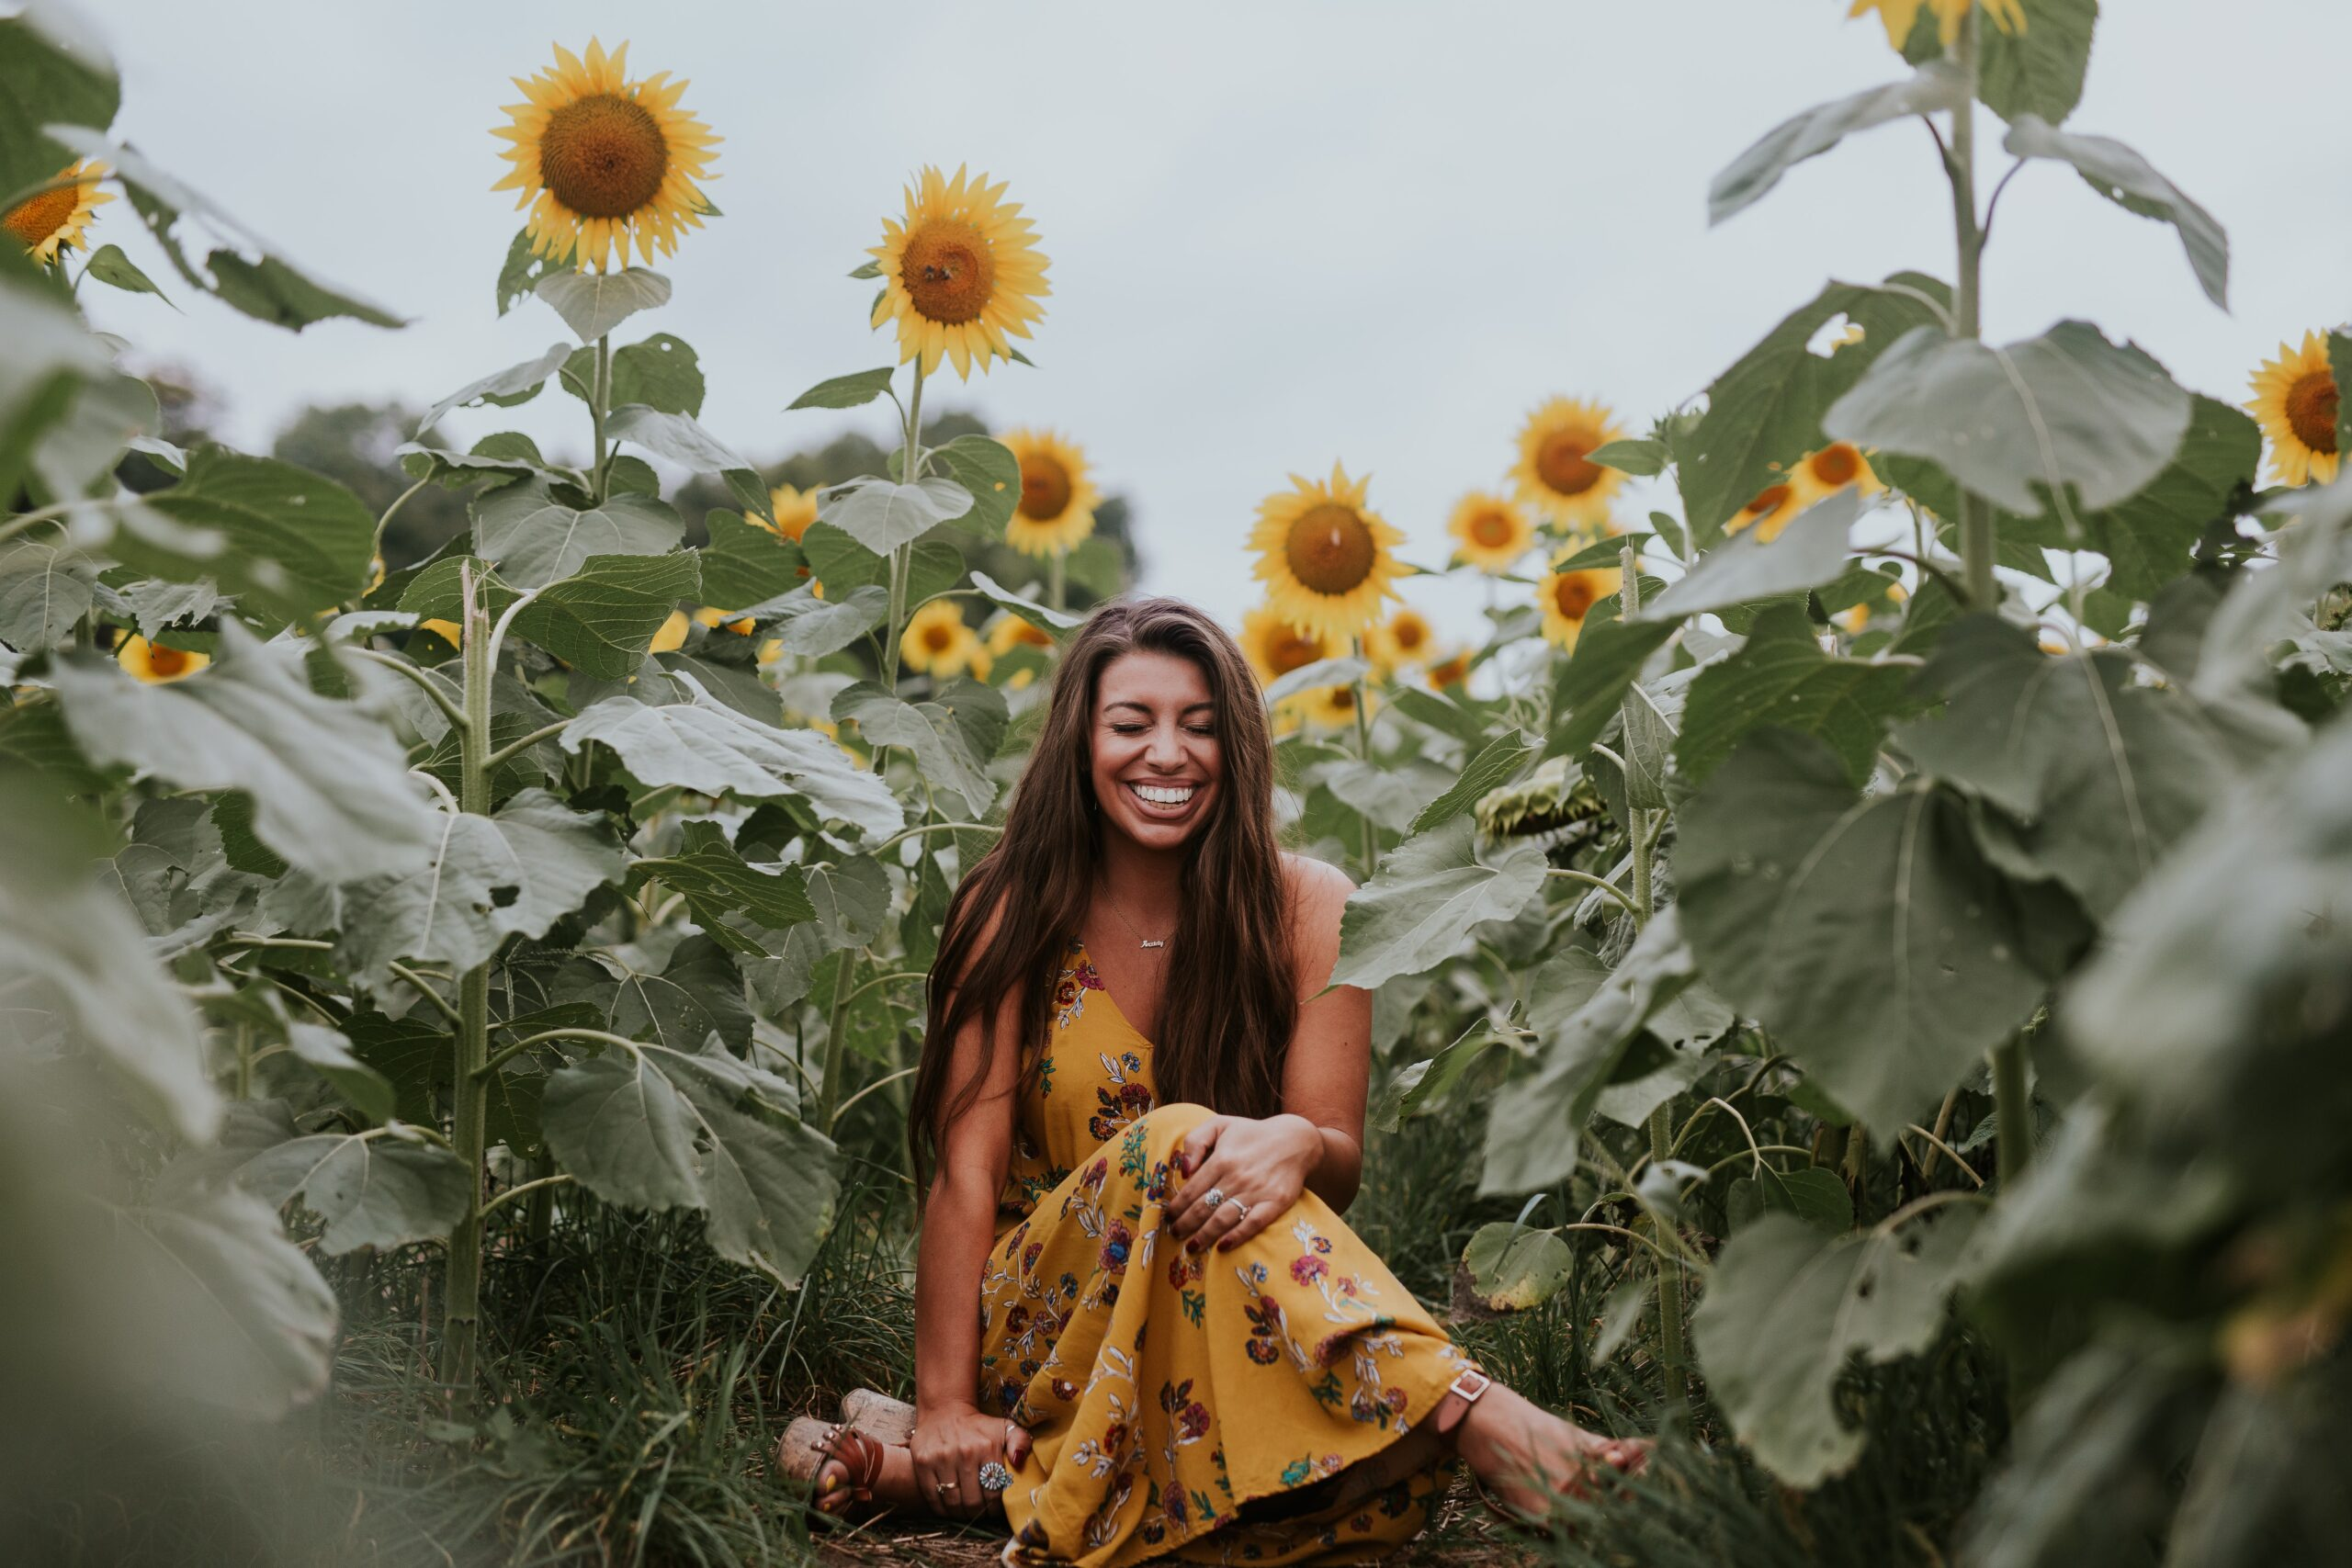 A woman sits in a field of flowers as a form of self-care.